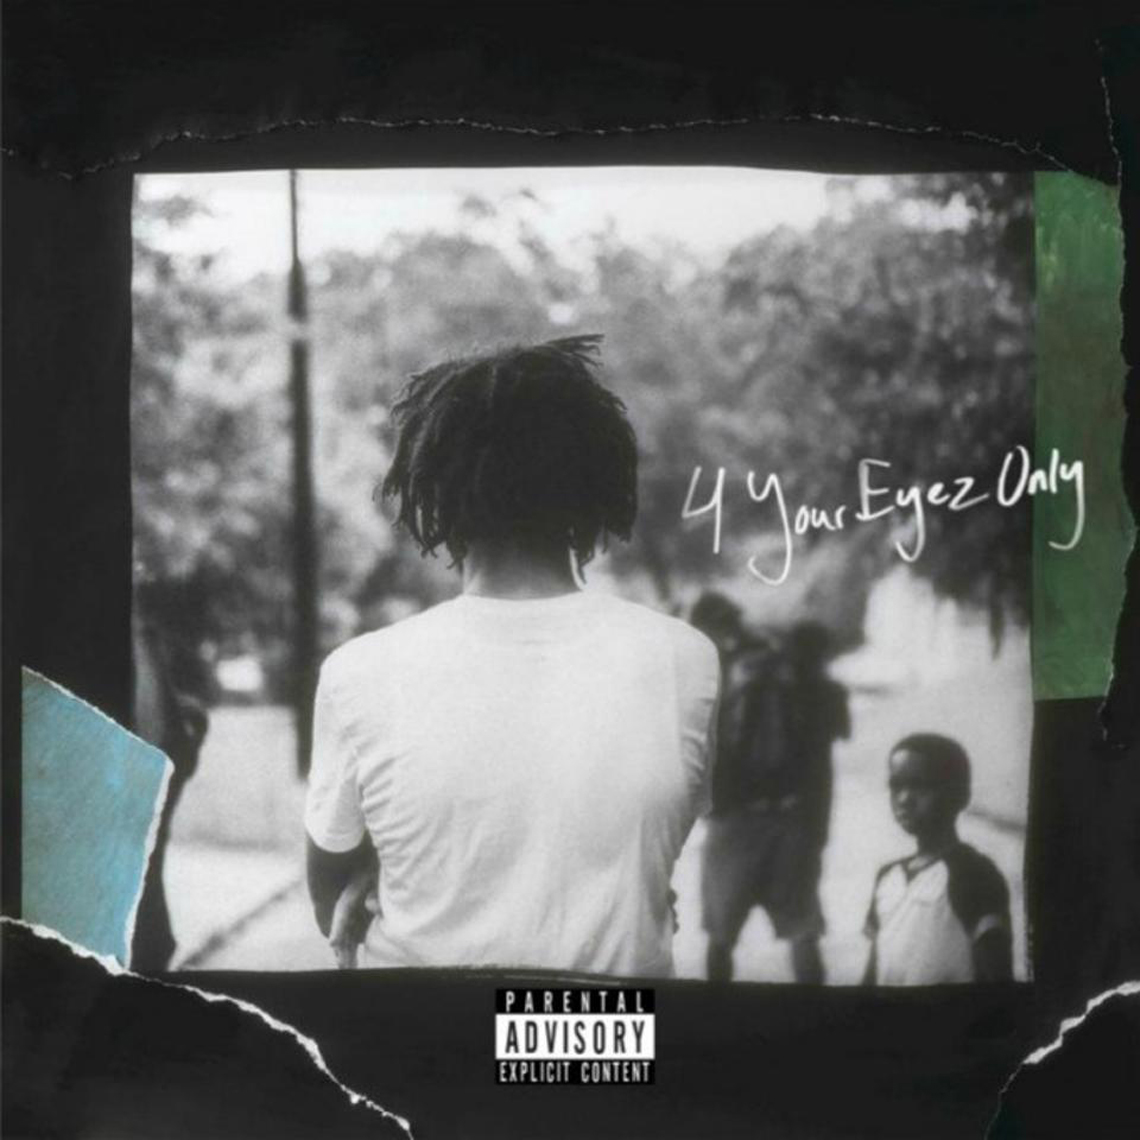 The Man Behind J. Cole's '4 Your Eyez Only' Album Cover Shares Personal Story of Its Creation